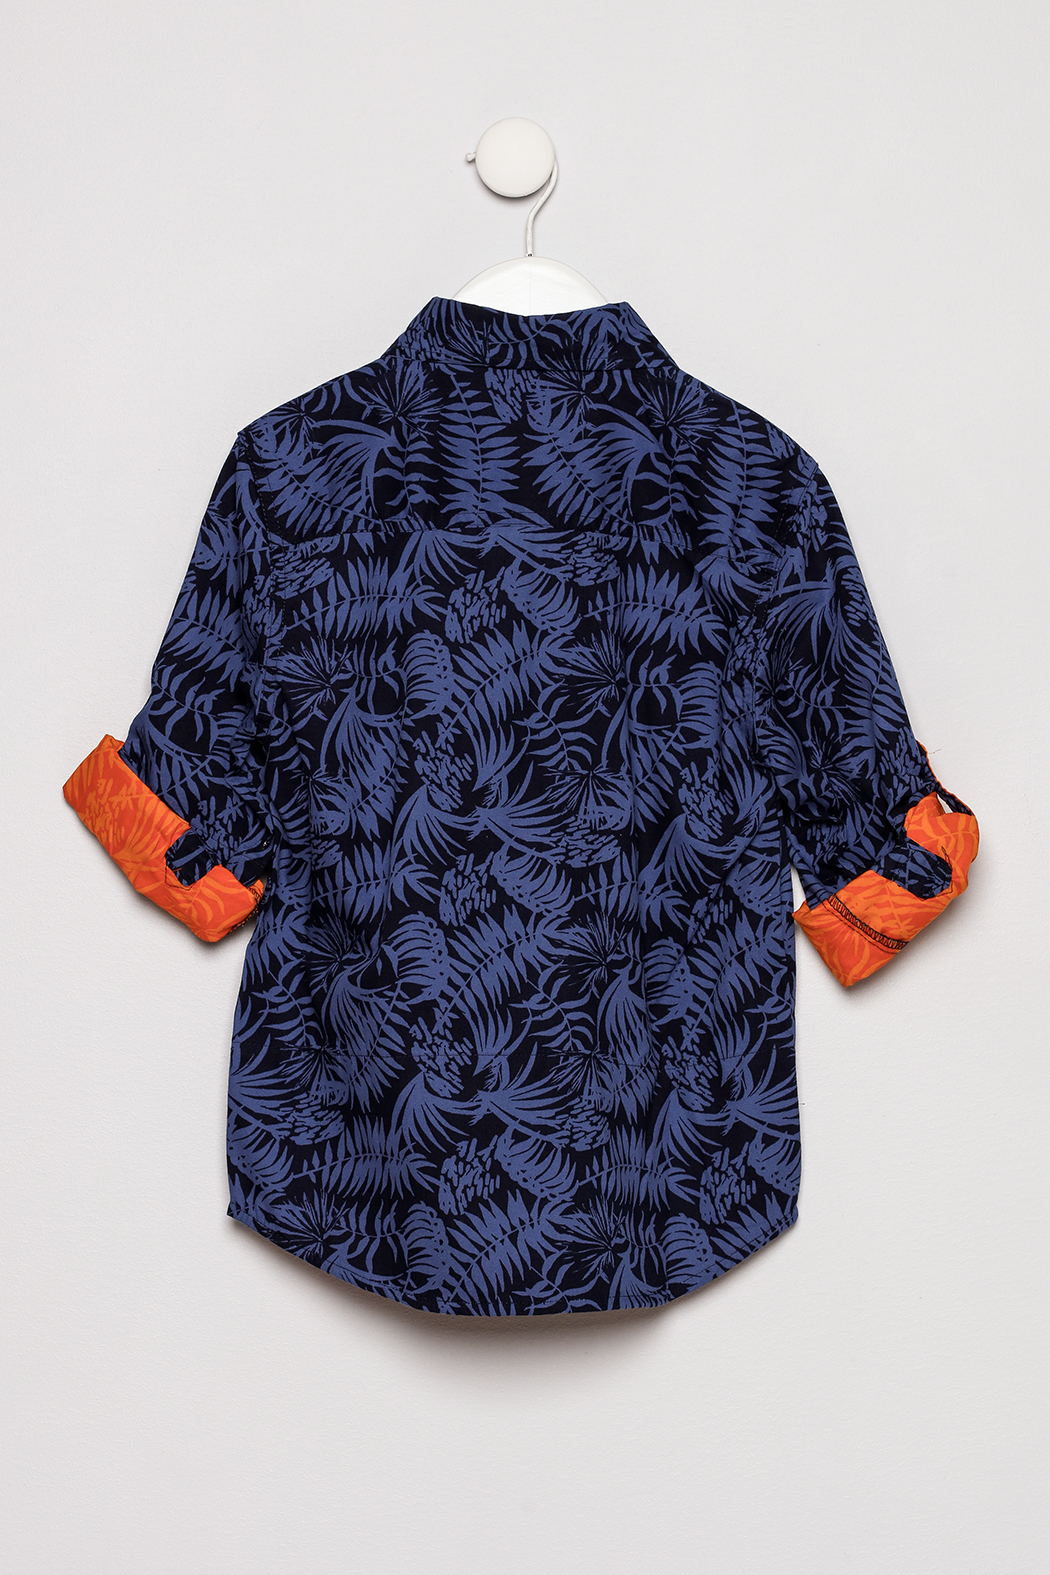 Smiths American Fern shirt - Back Cropped Image